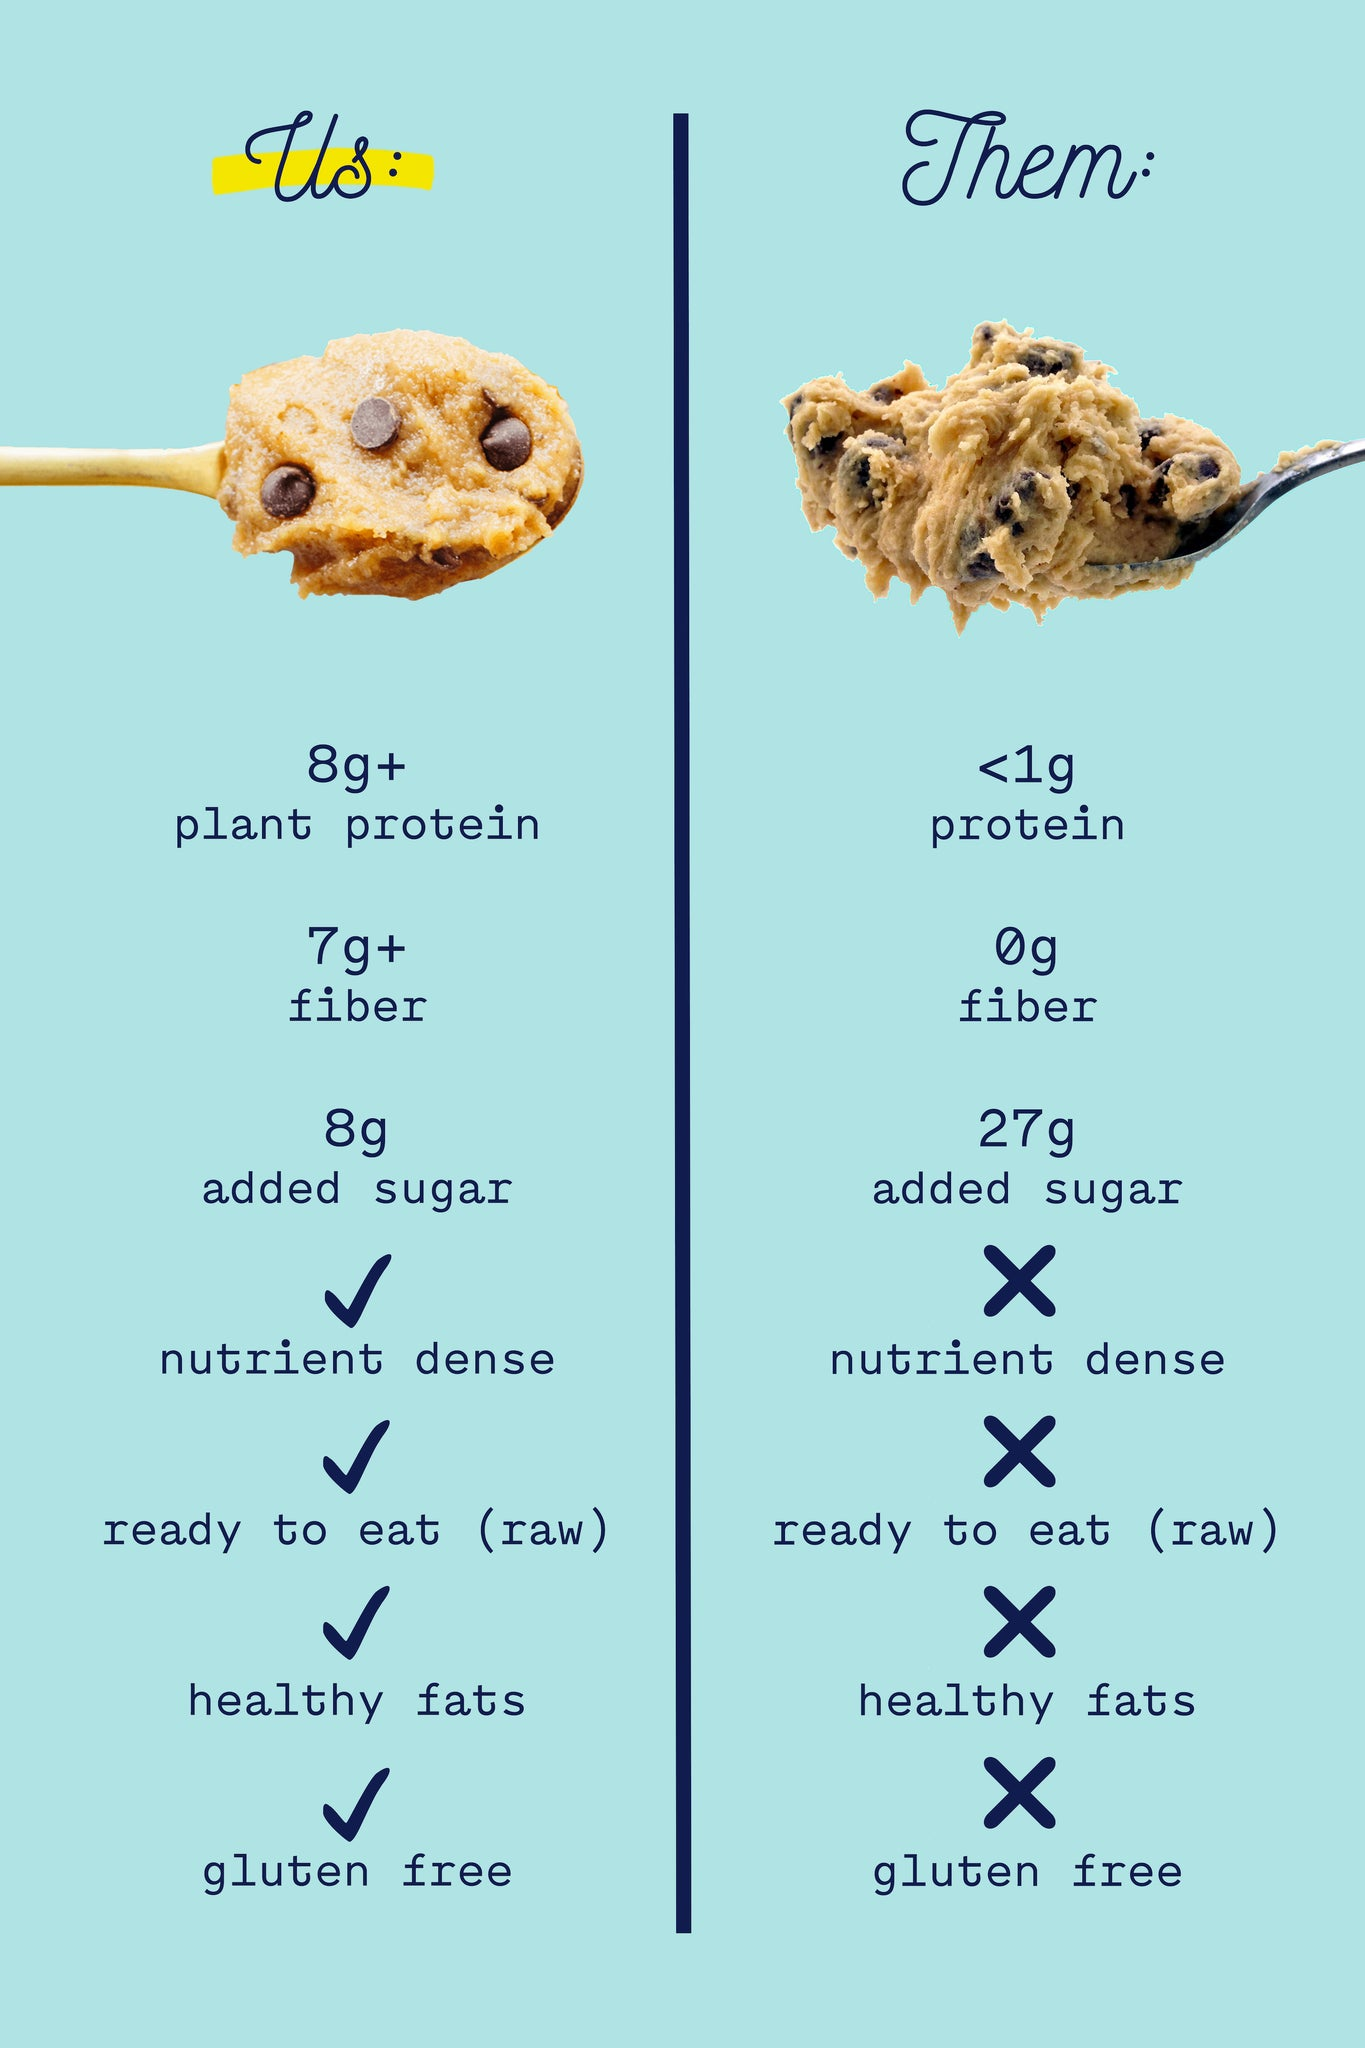 Our cookie dough vs. theirs!